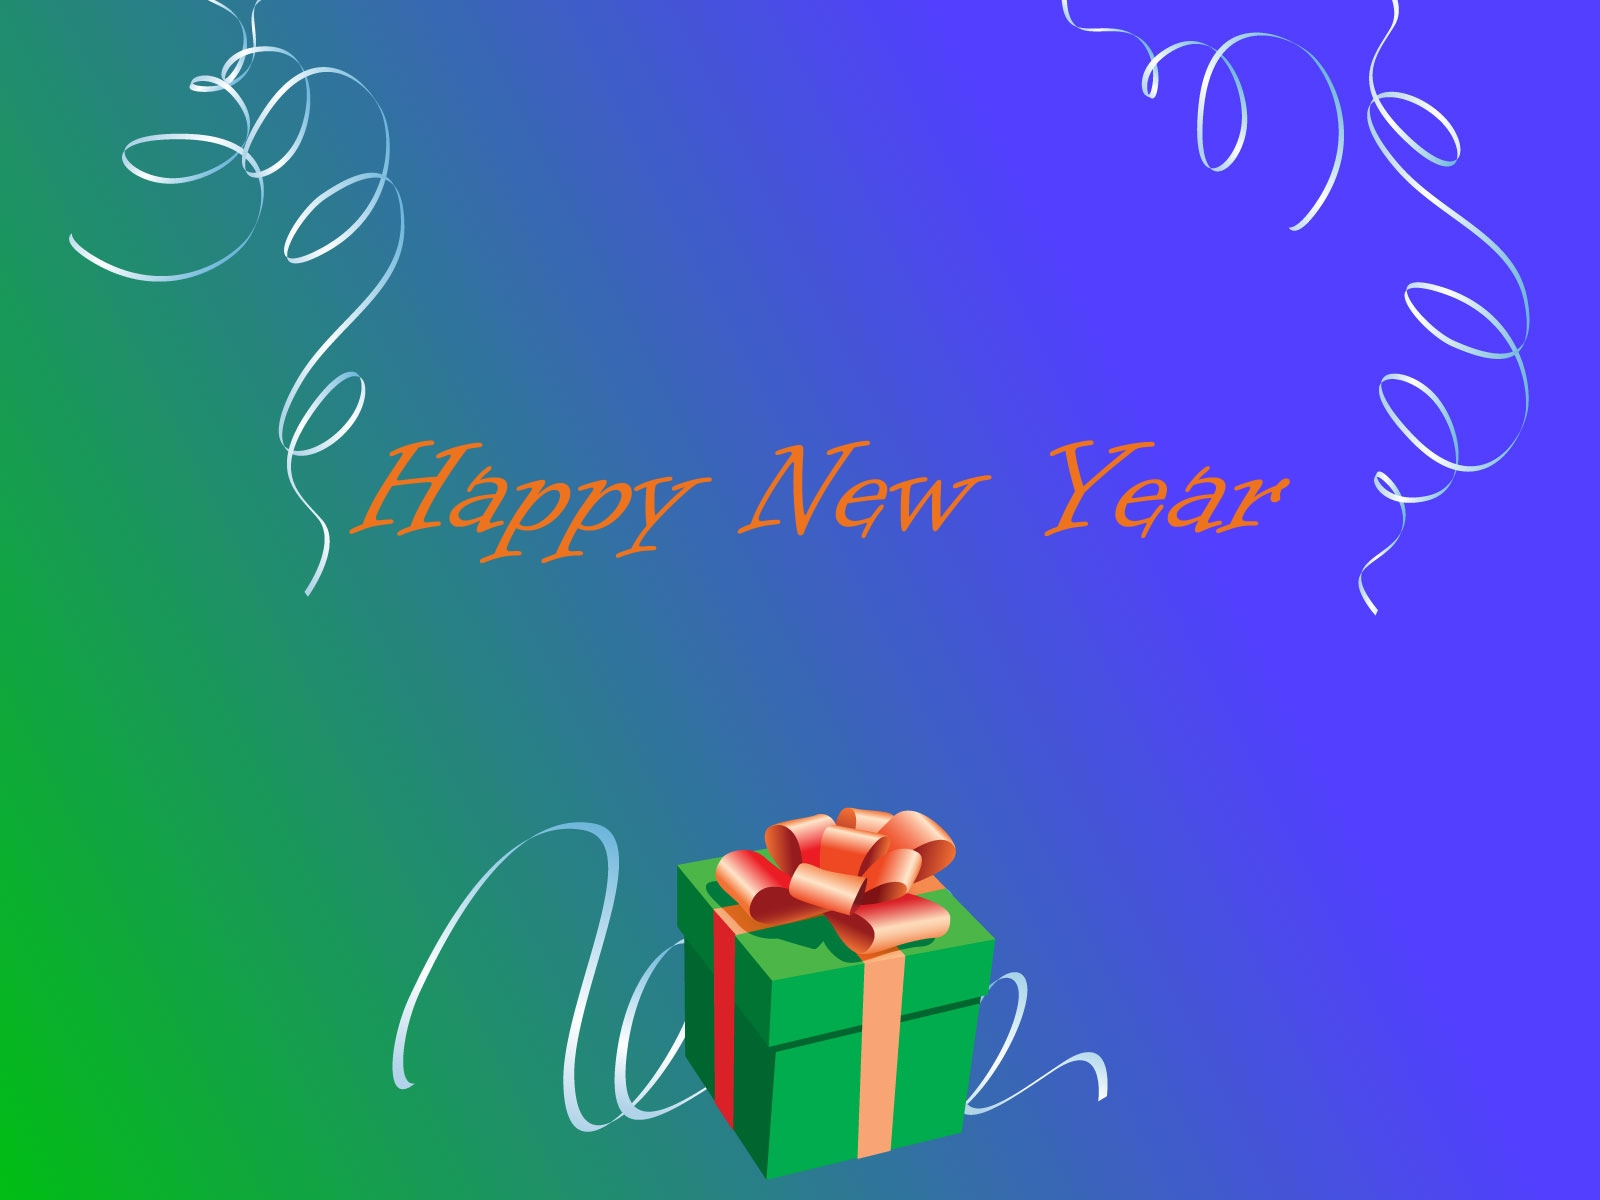 Most Beautiful Happy New Year Wishes Greetings Cards Wallpapers 2013 004